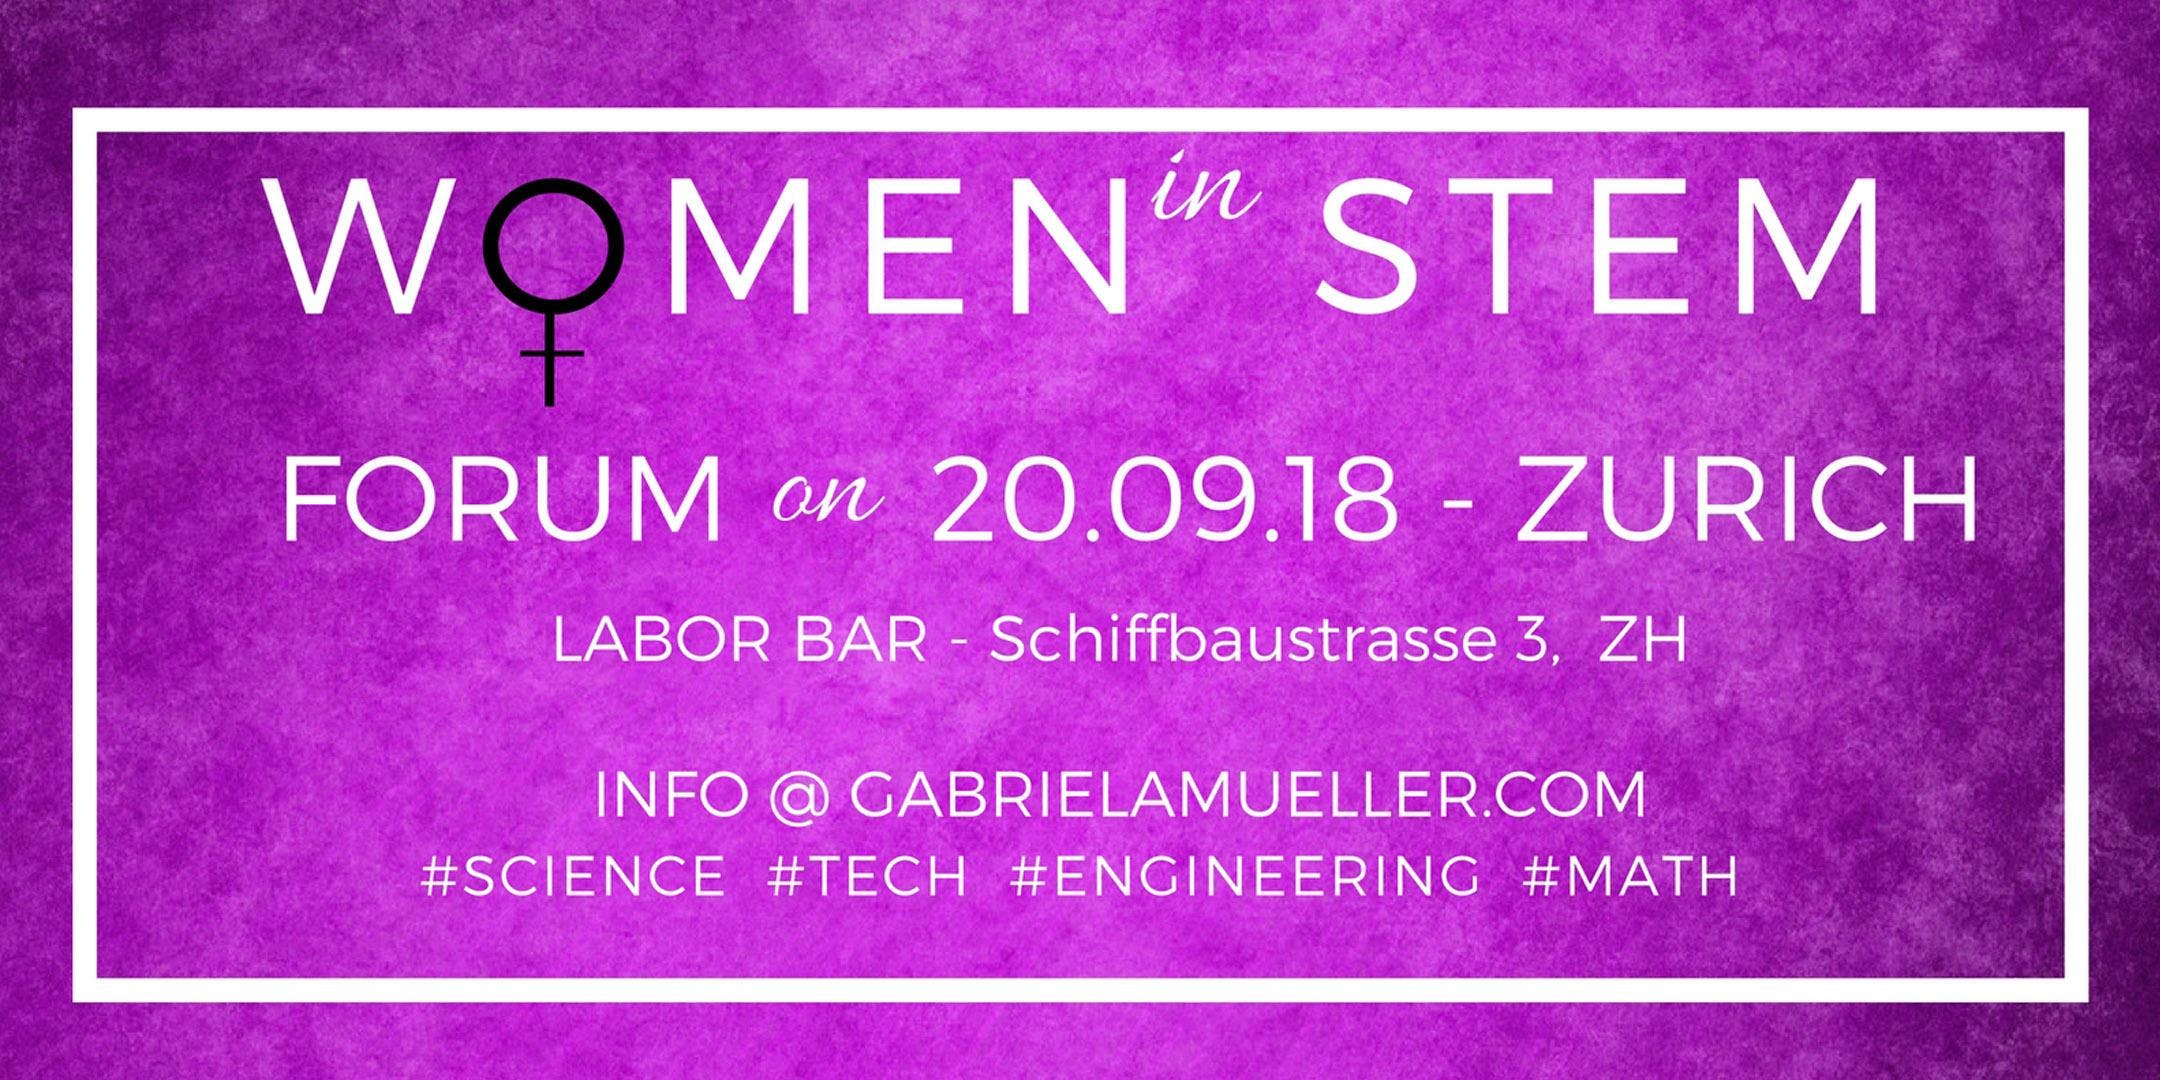 STEM WOMEN FORUM 2018 - Disruptive Empowering Experience. Don't miss it!